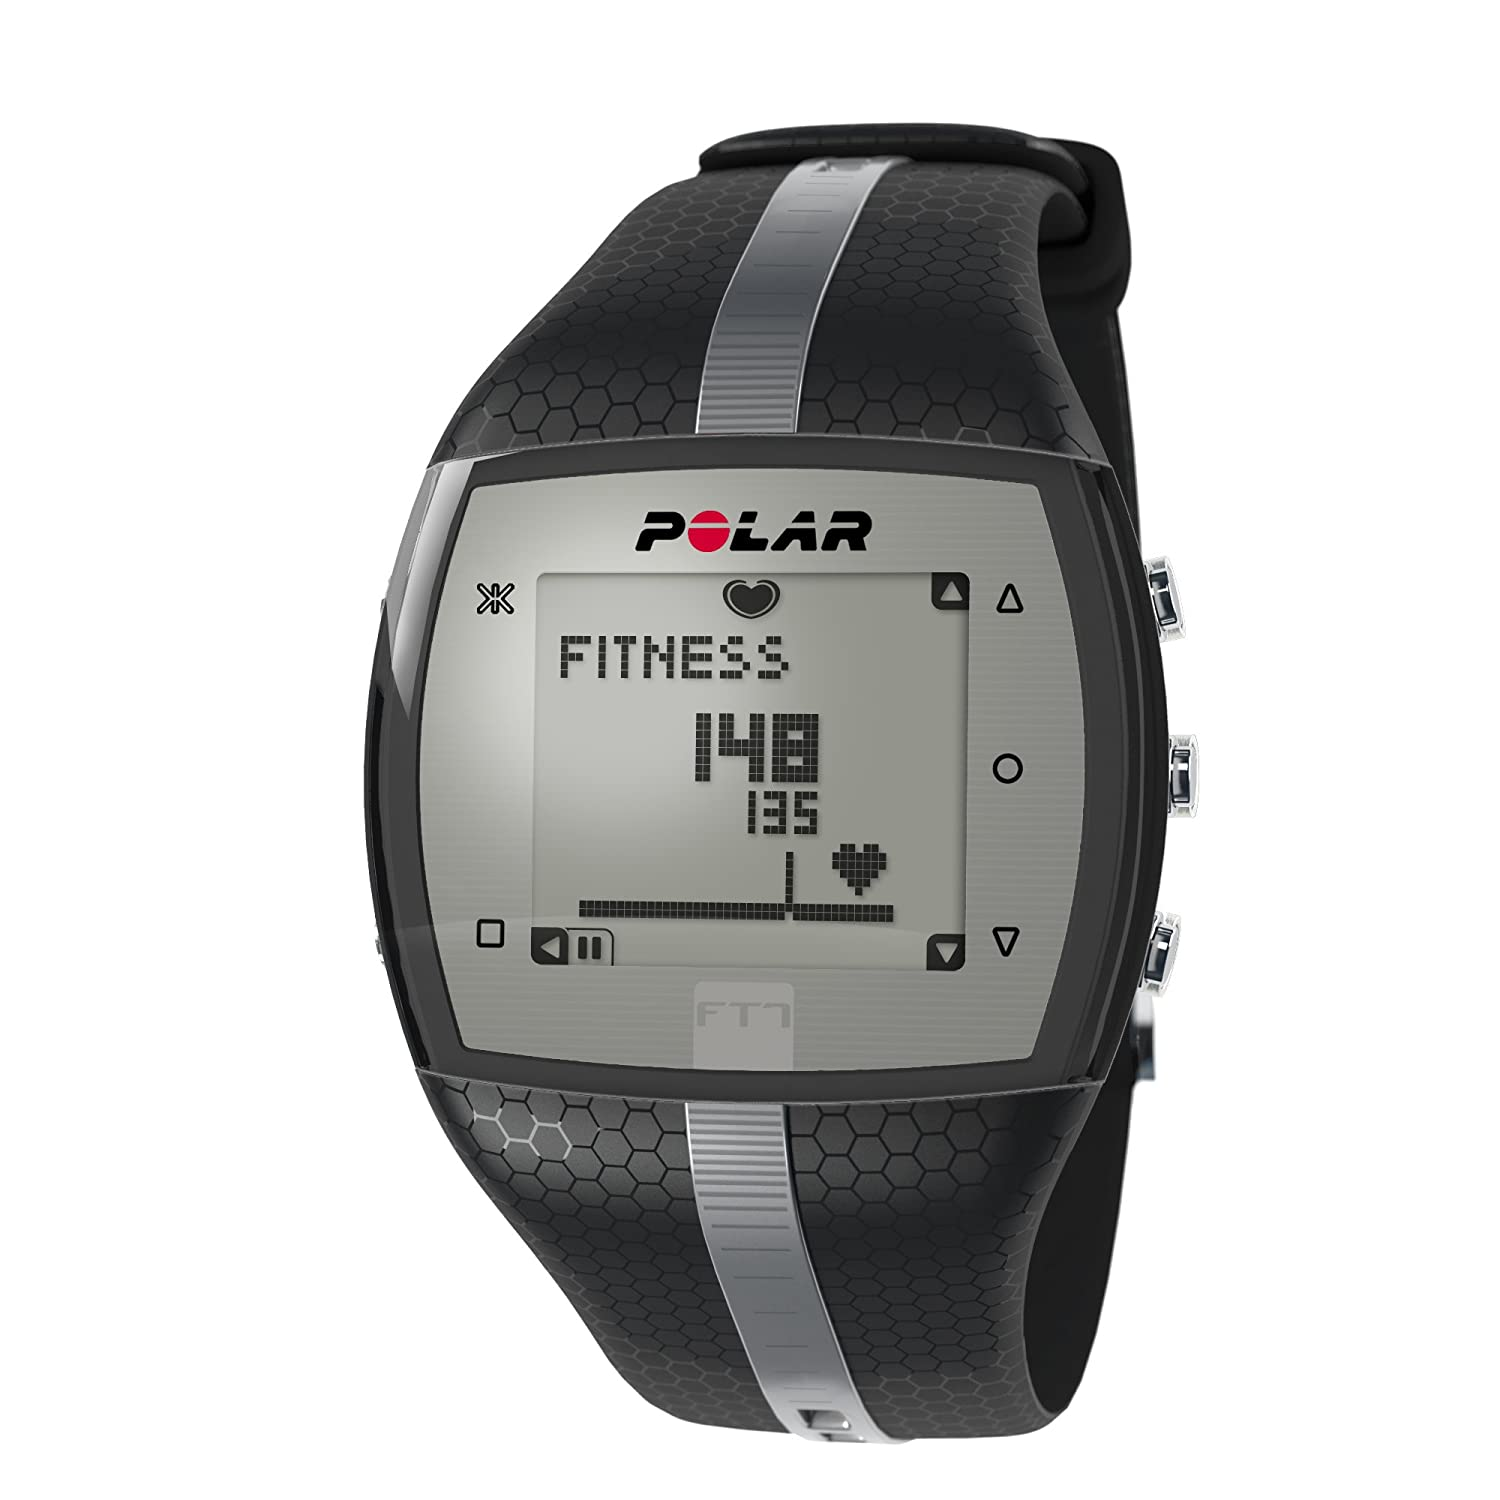 POLAR FT7 Heart Rate Monitor - Black/Silver